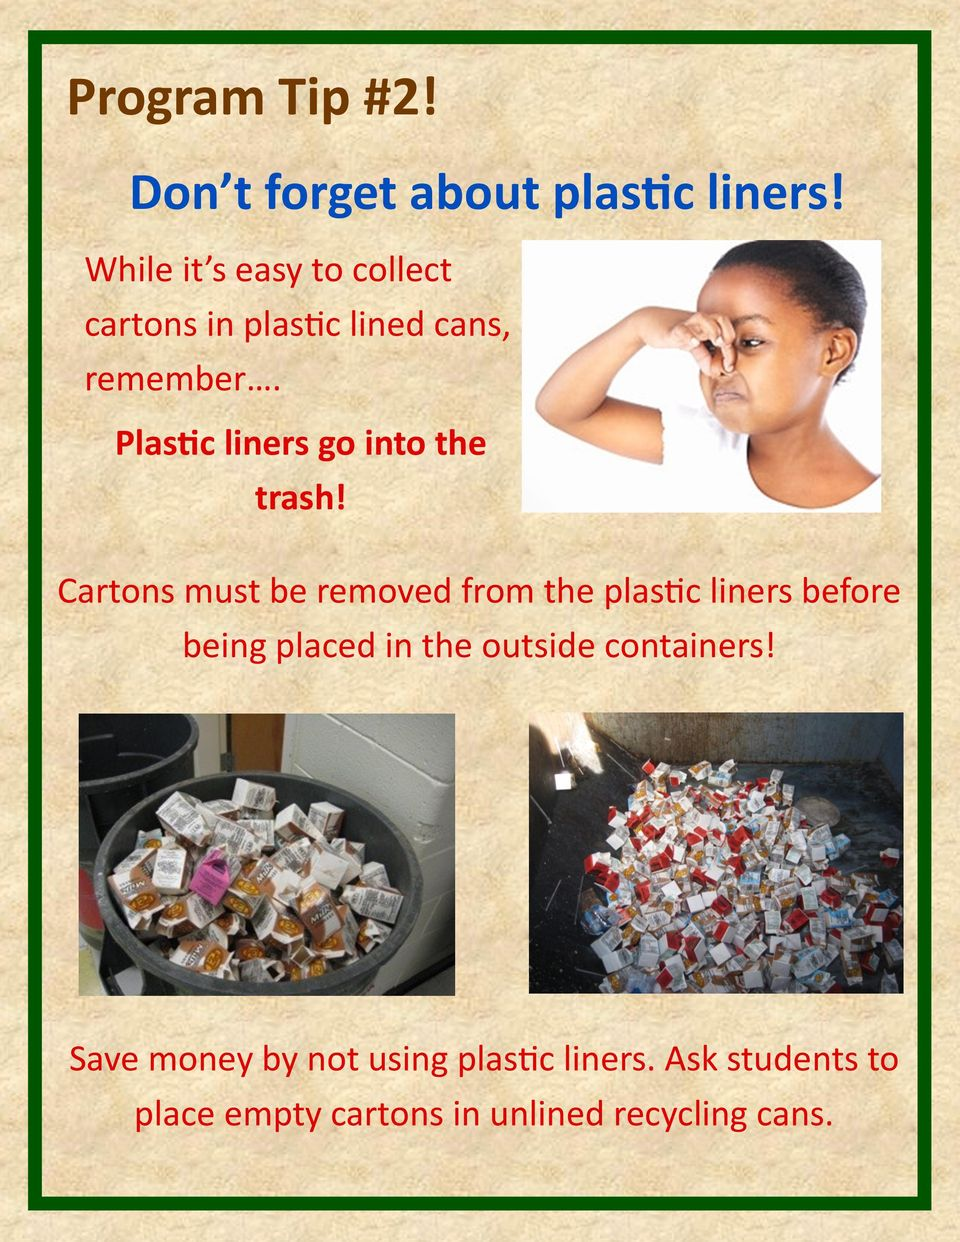 Plastic liners go into the trash!